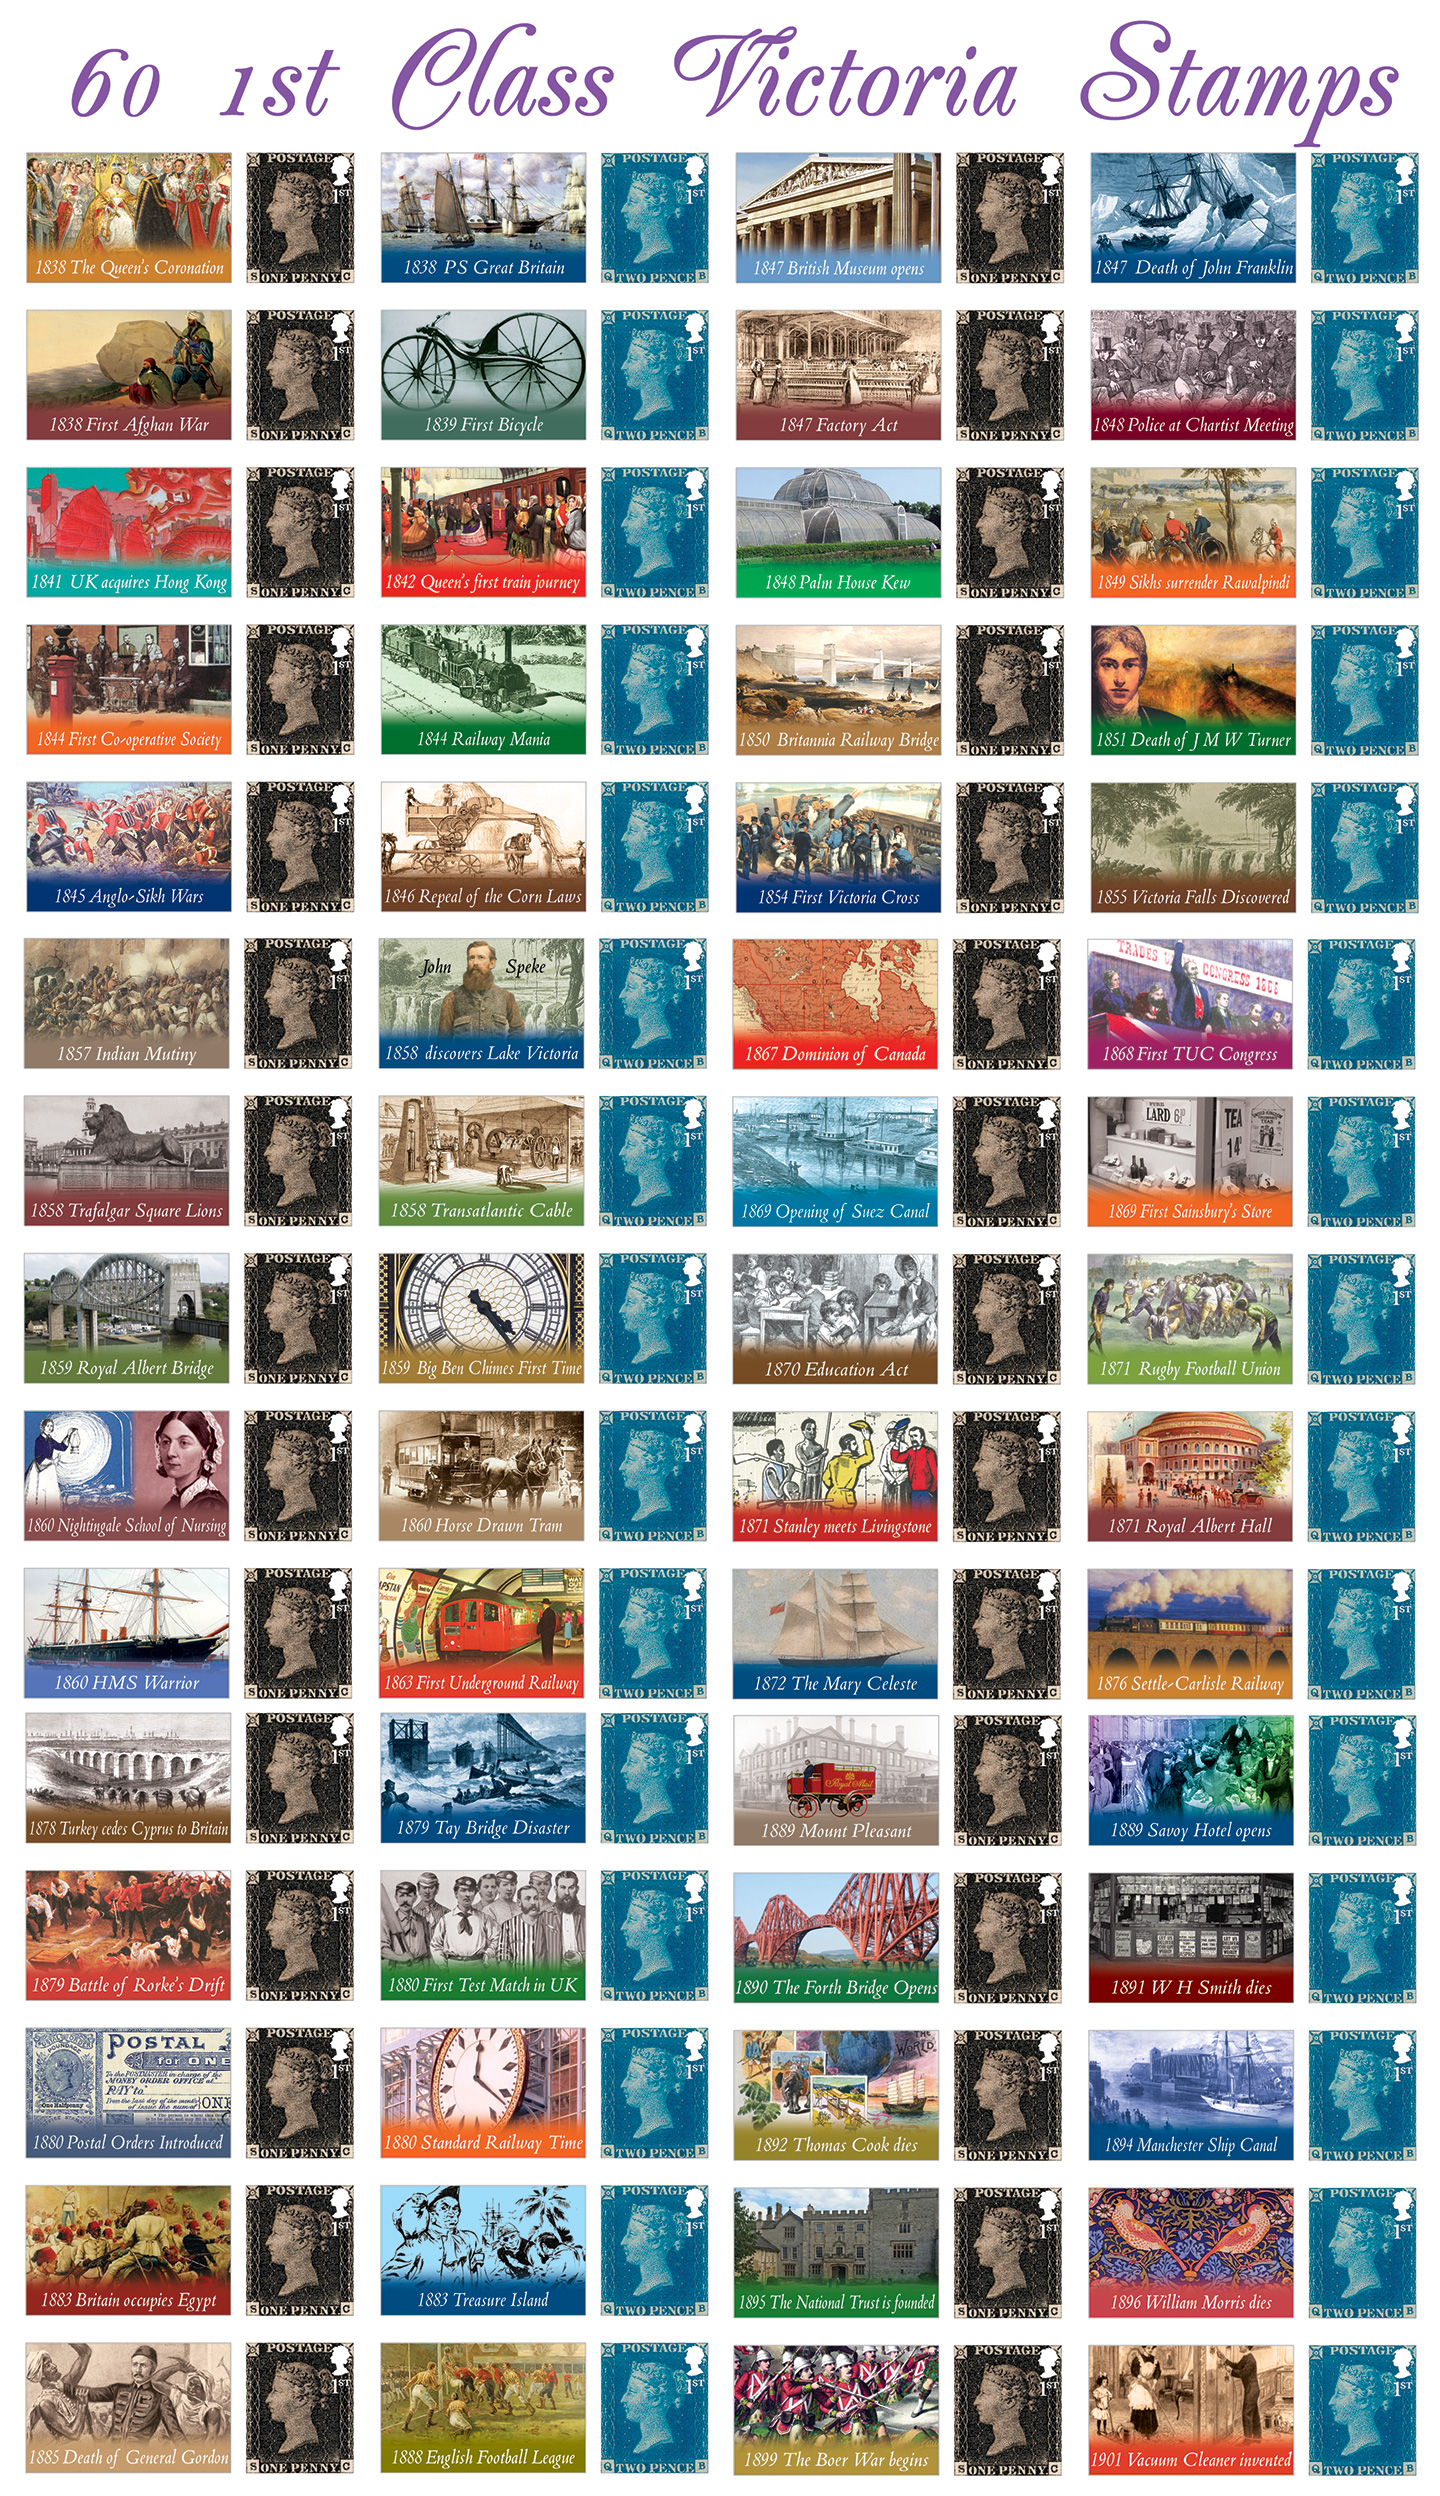 Queen Victoria Stamps - SAVE £9